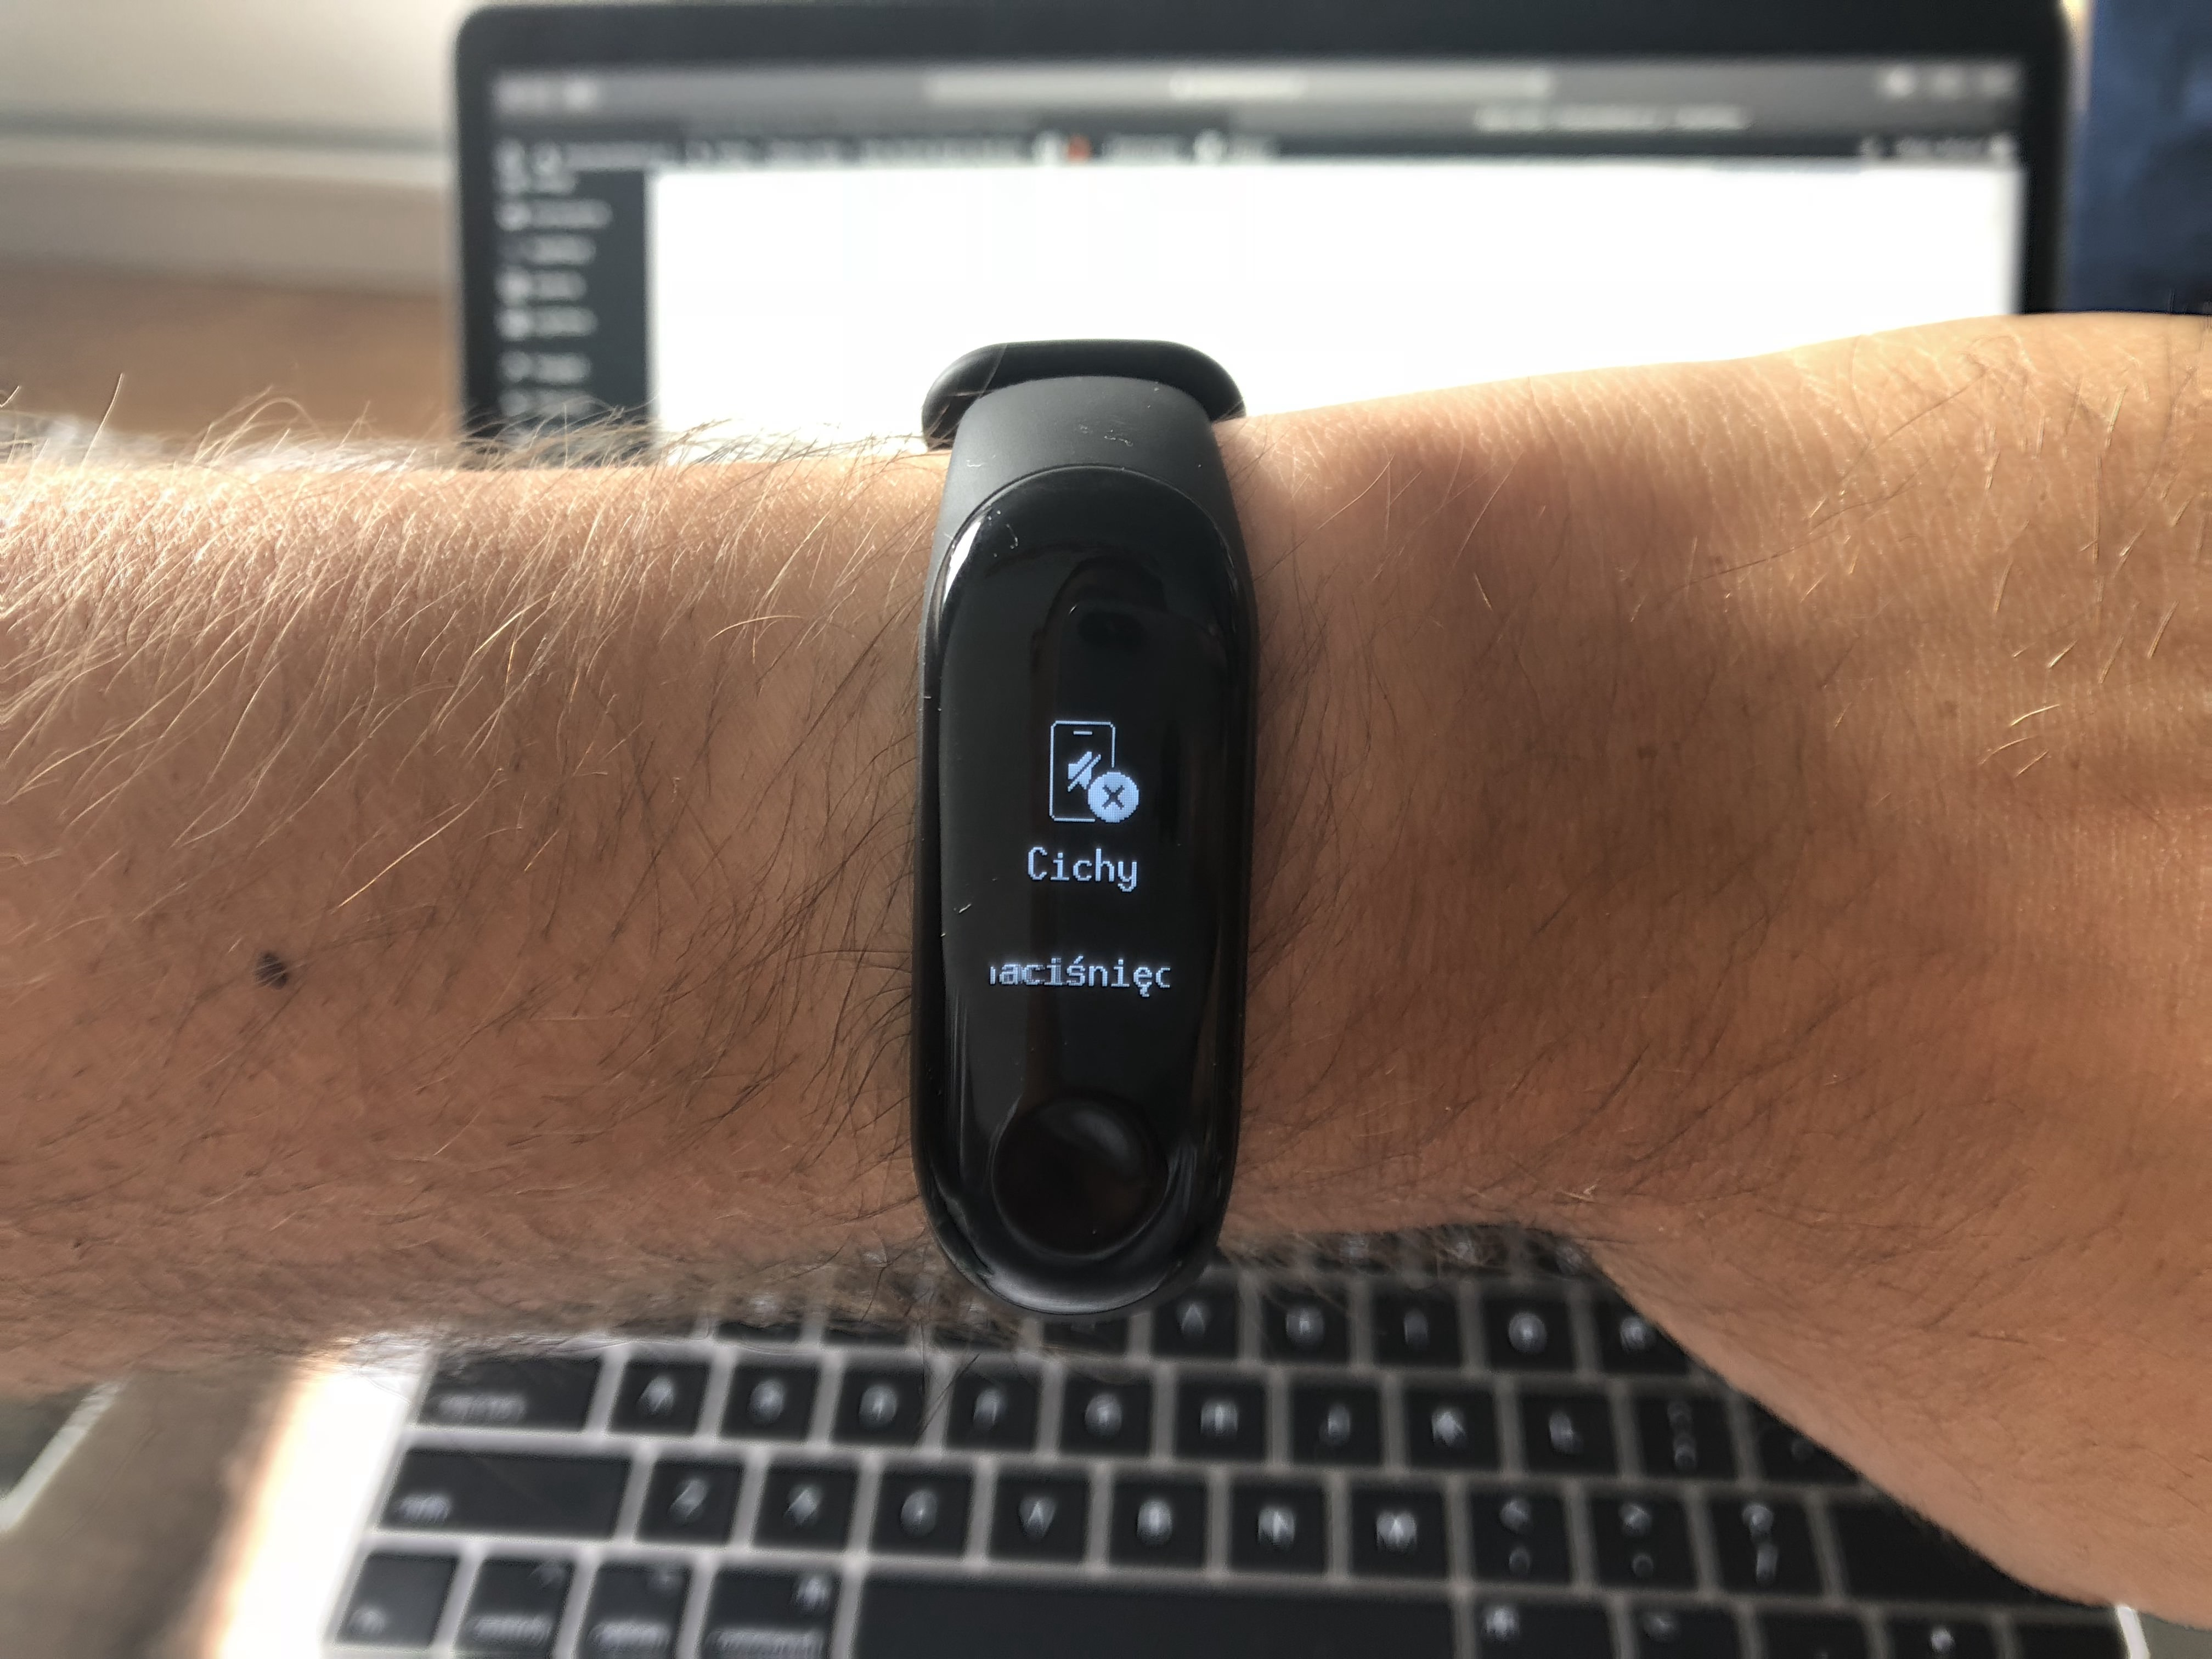 The new update for the Xiaomi Mi Band 3 introduces the mute function of the phone